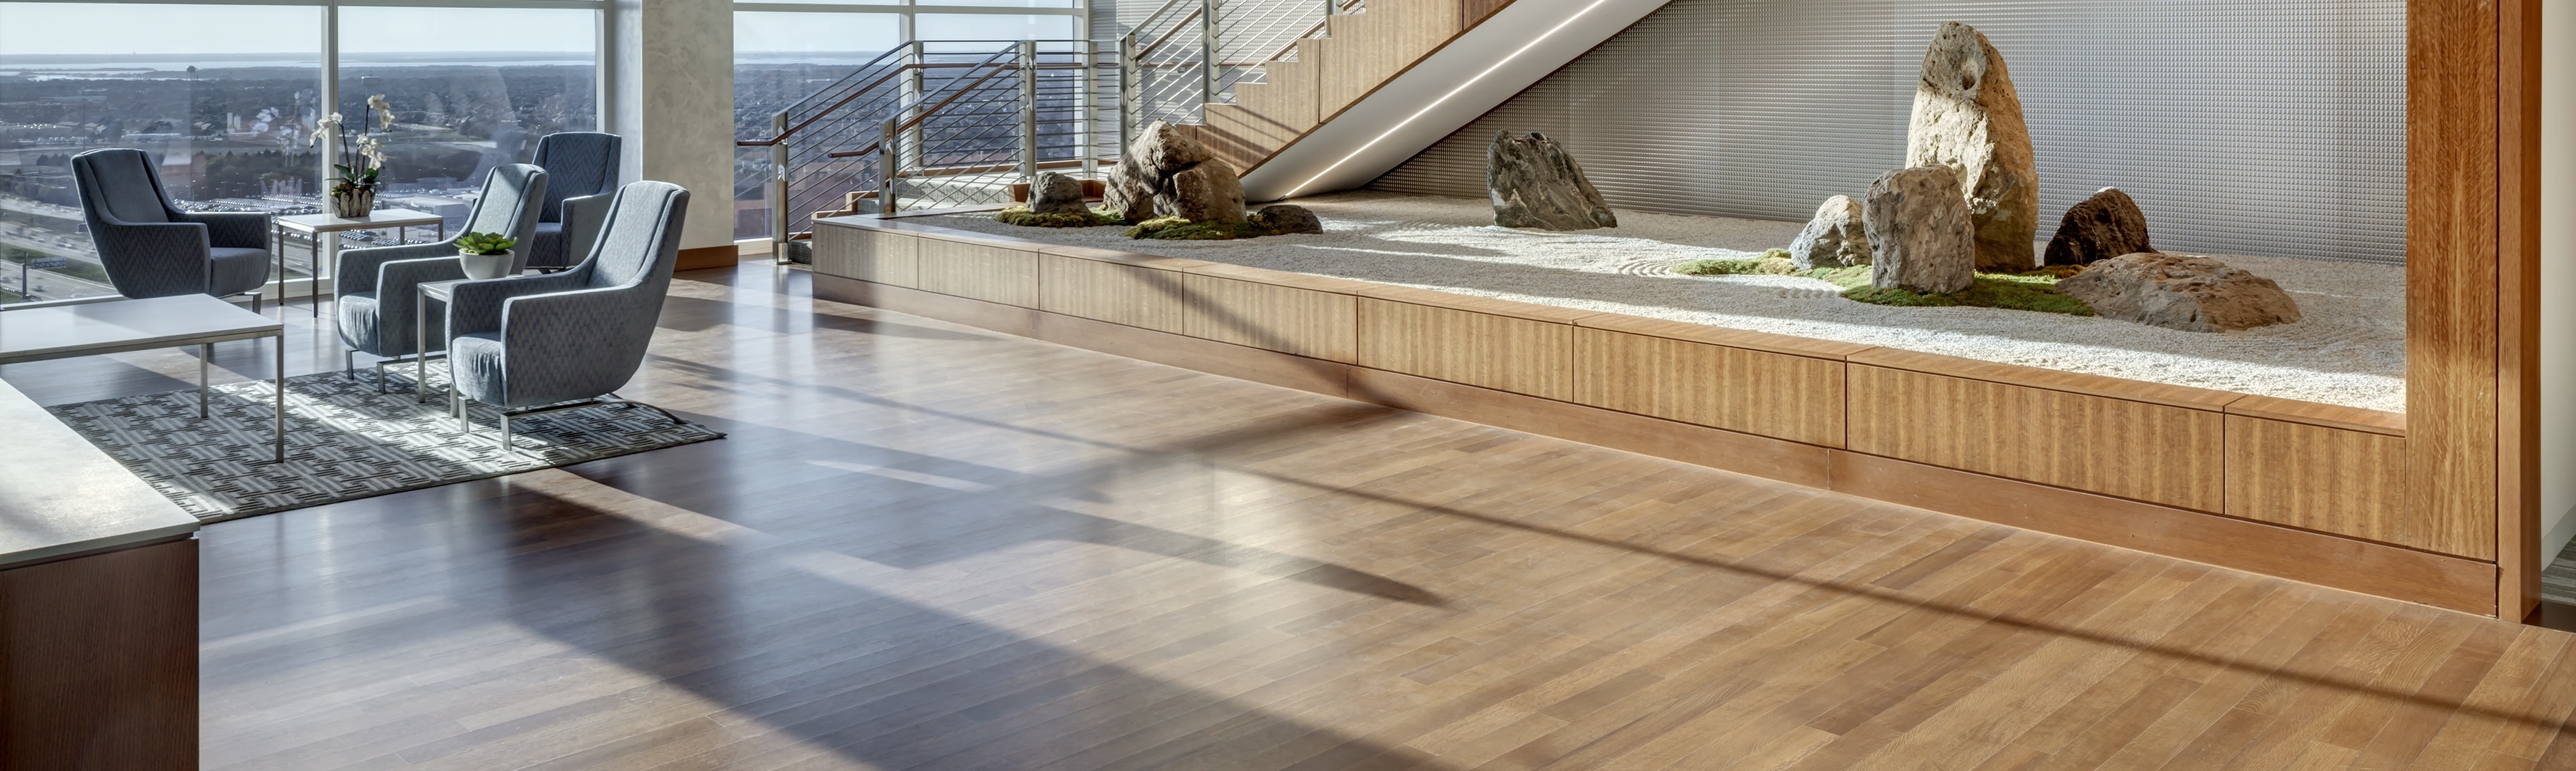 Ntt Data Woodwright Hardwood Floor Company